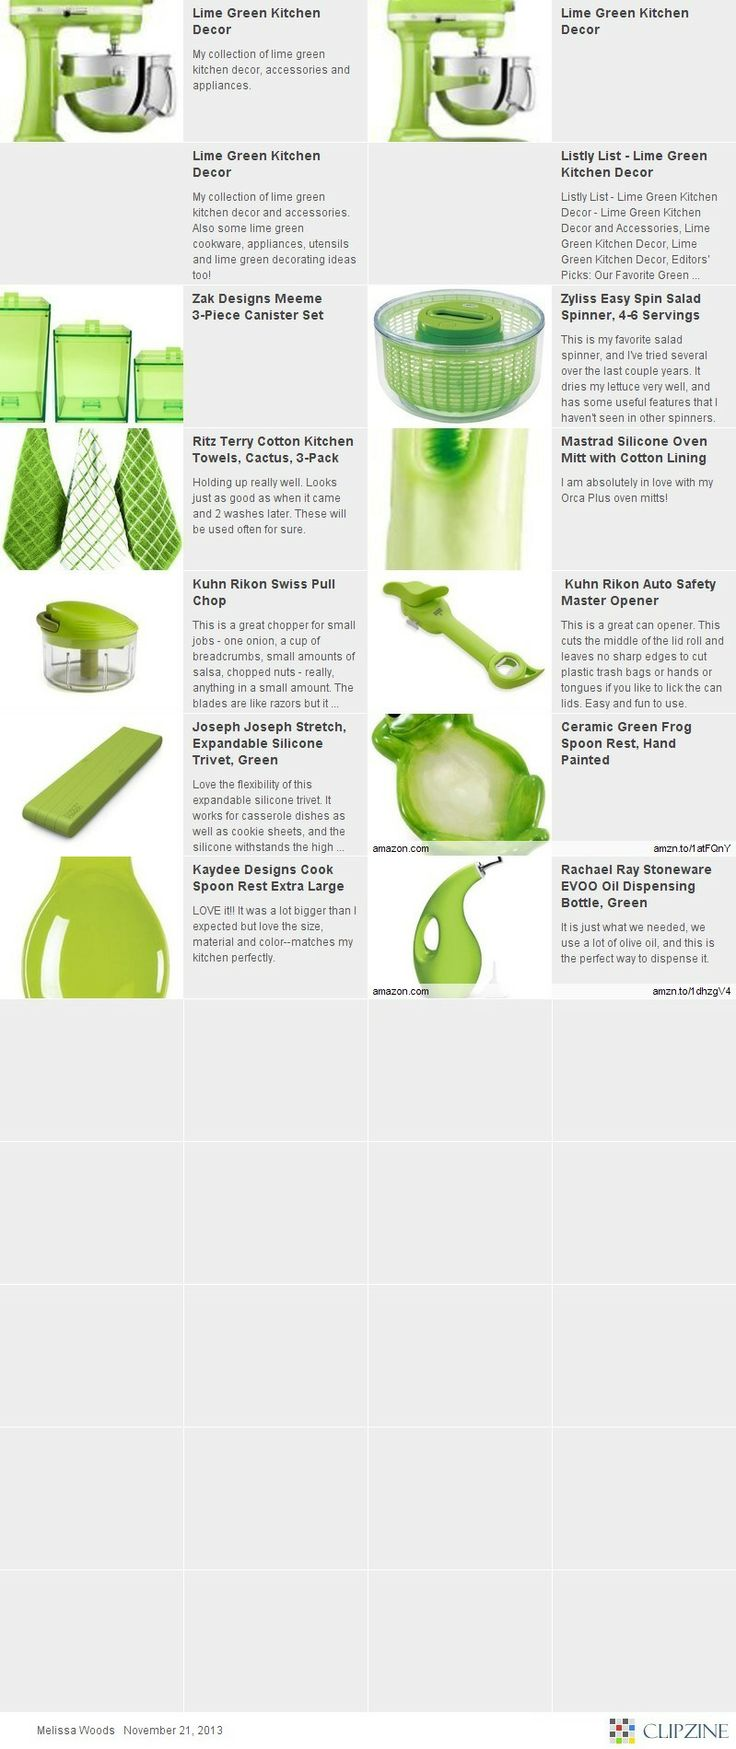 Lime green kitchen decor that i love lime green kitchen for Lime green kitchenware